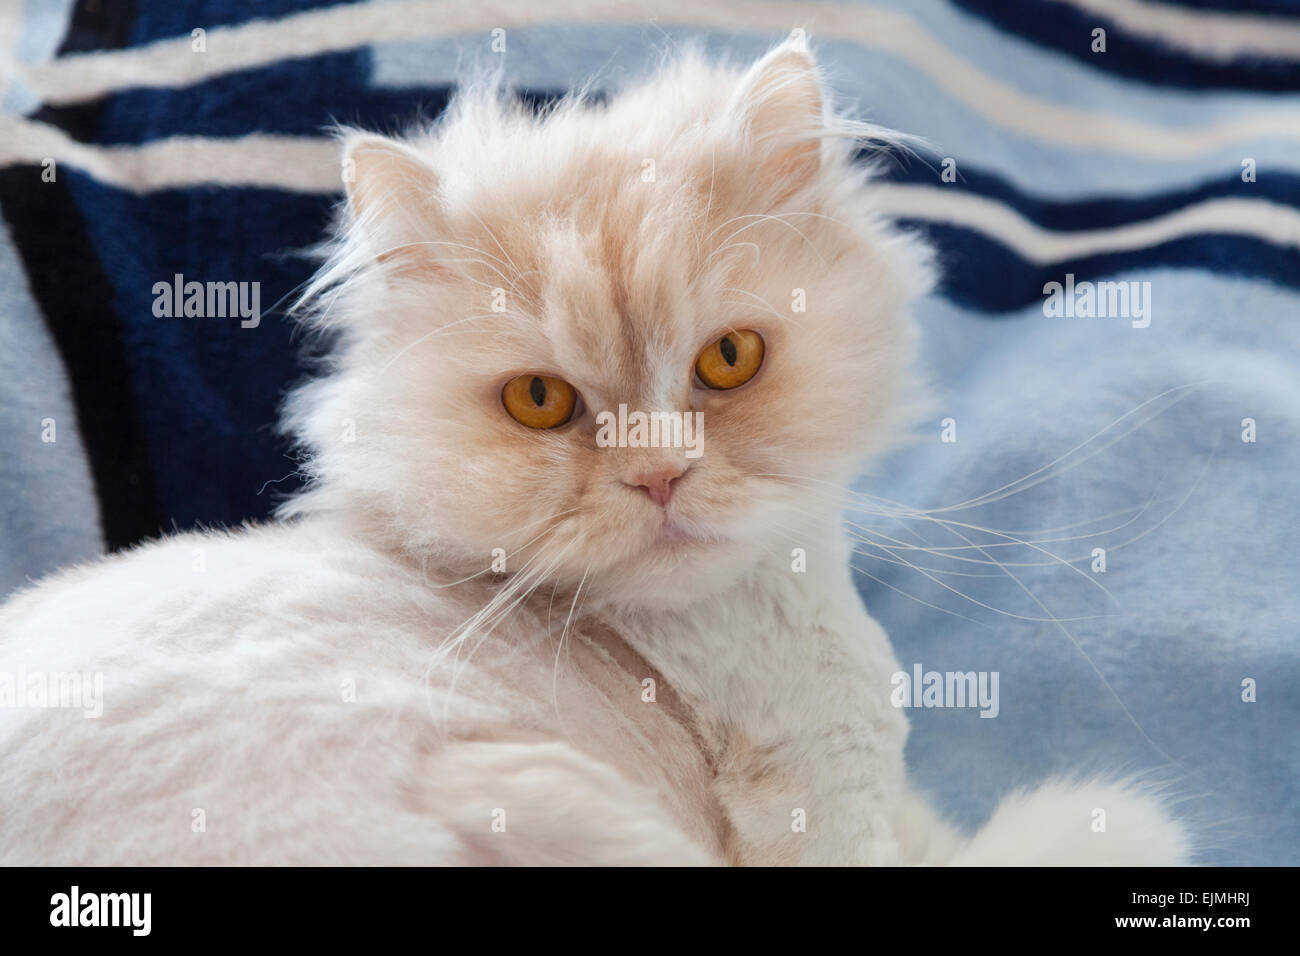 Fluffy white cat with orange eyes and long whiskers ... White Cat With Orange Eyes